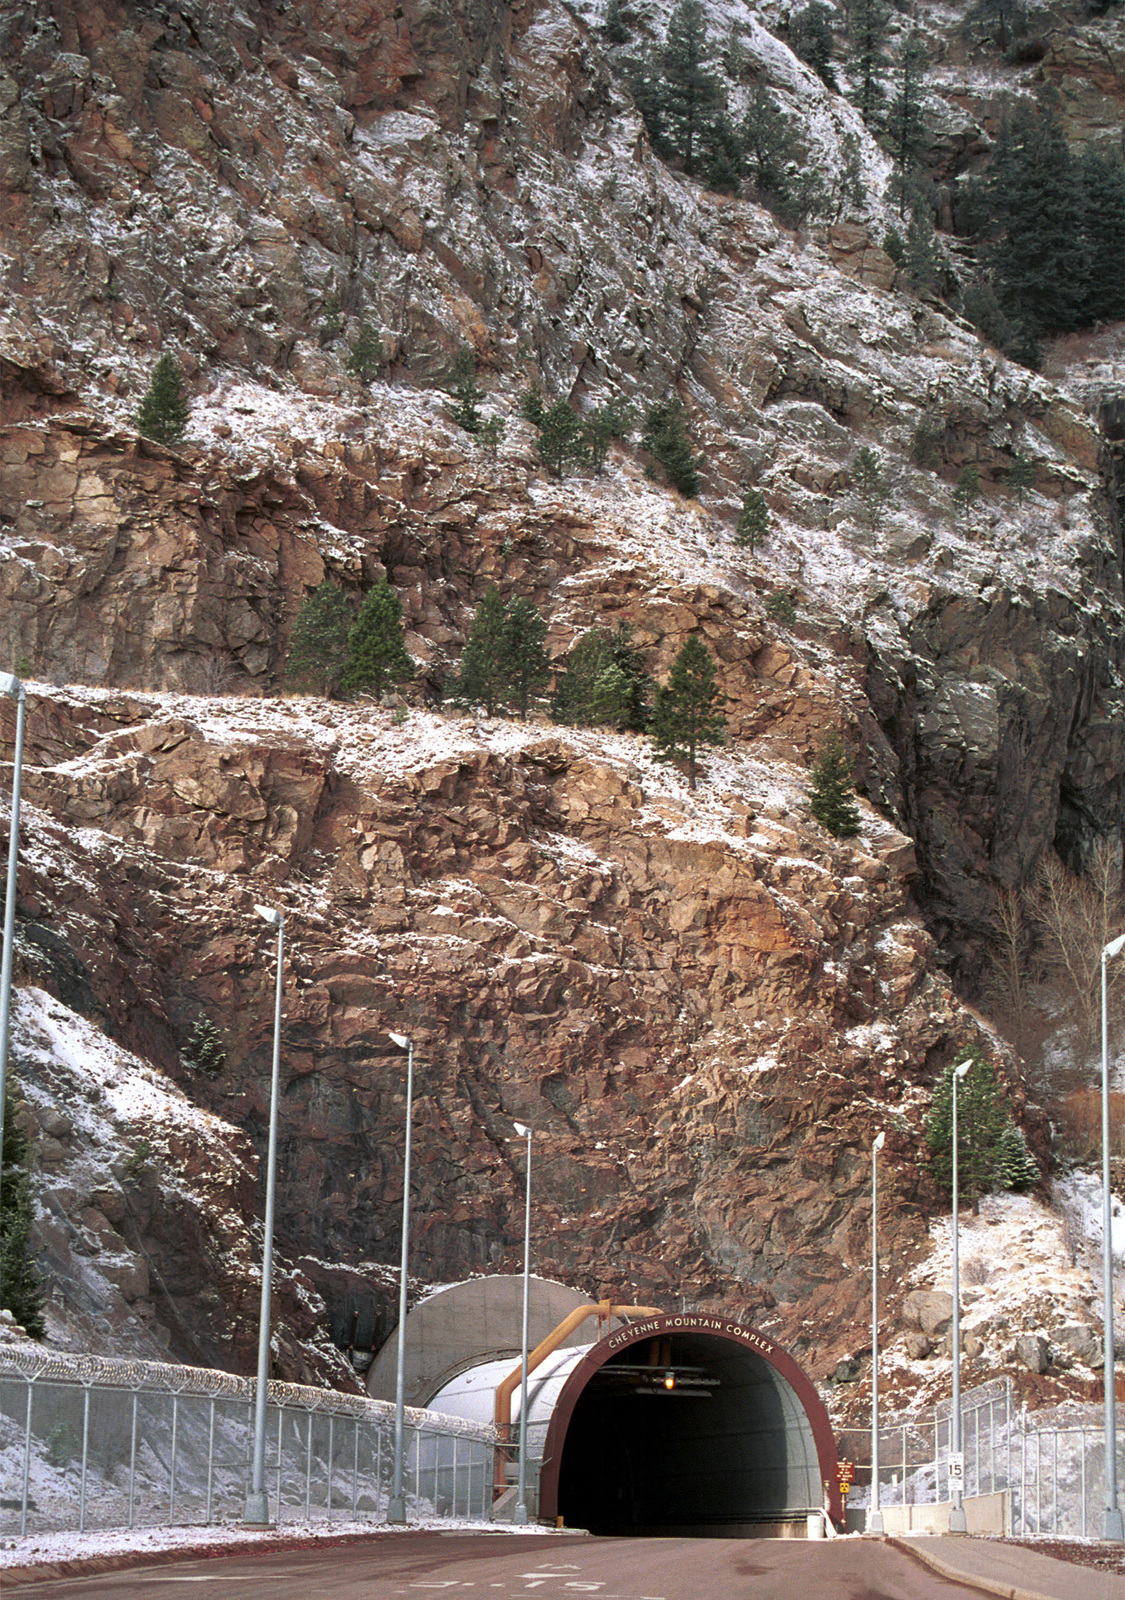 Tunnel entrance to the Cheyenne Mountain Complex, Colorado